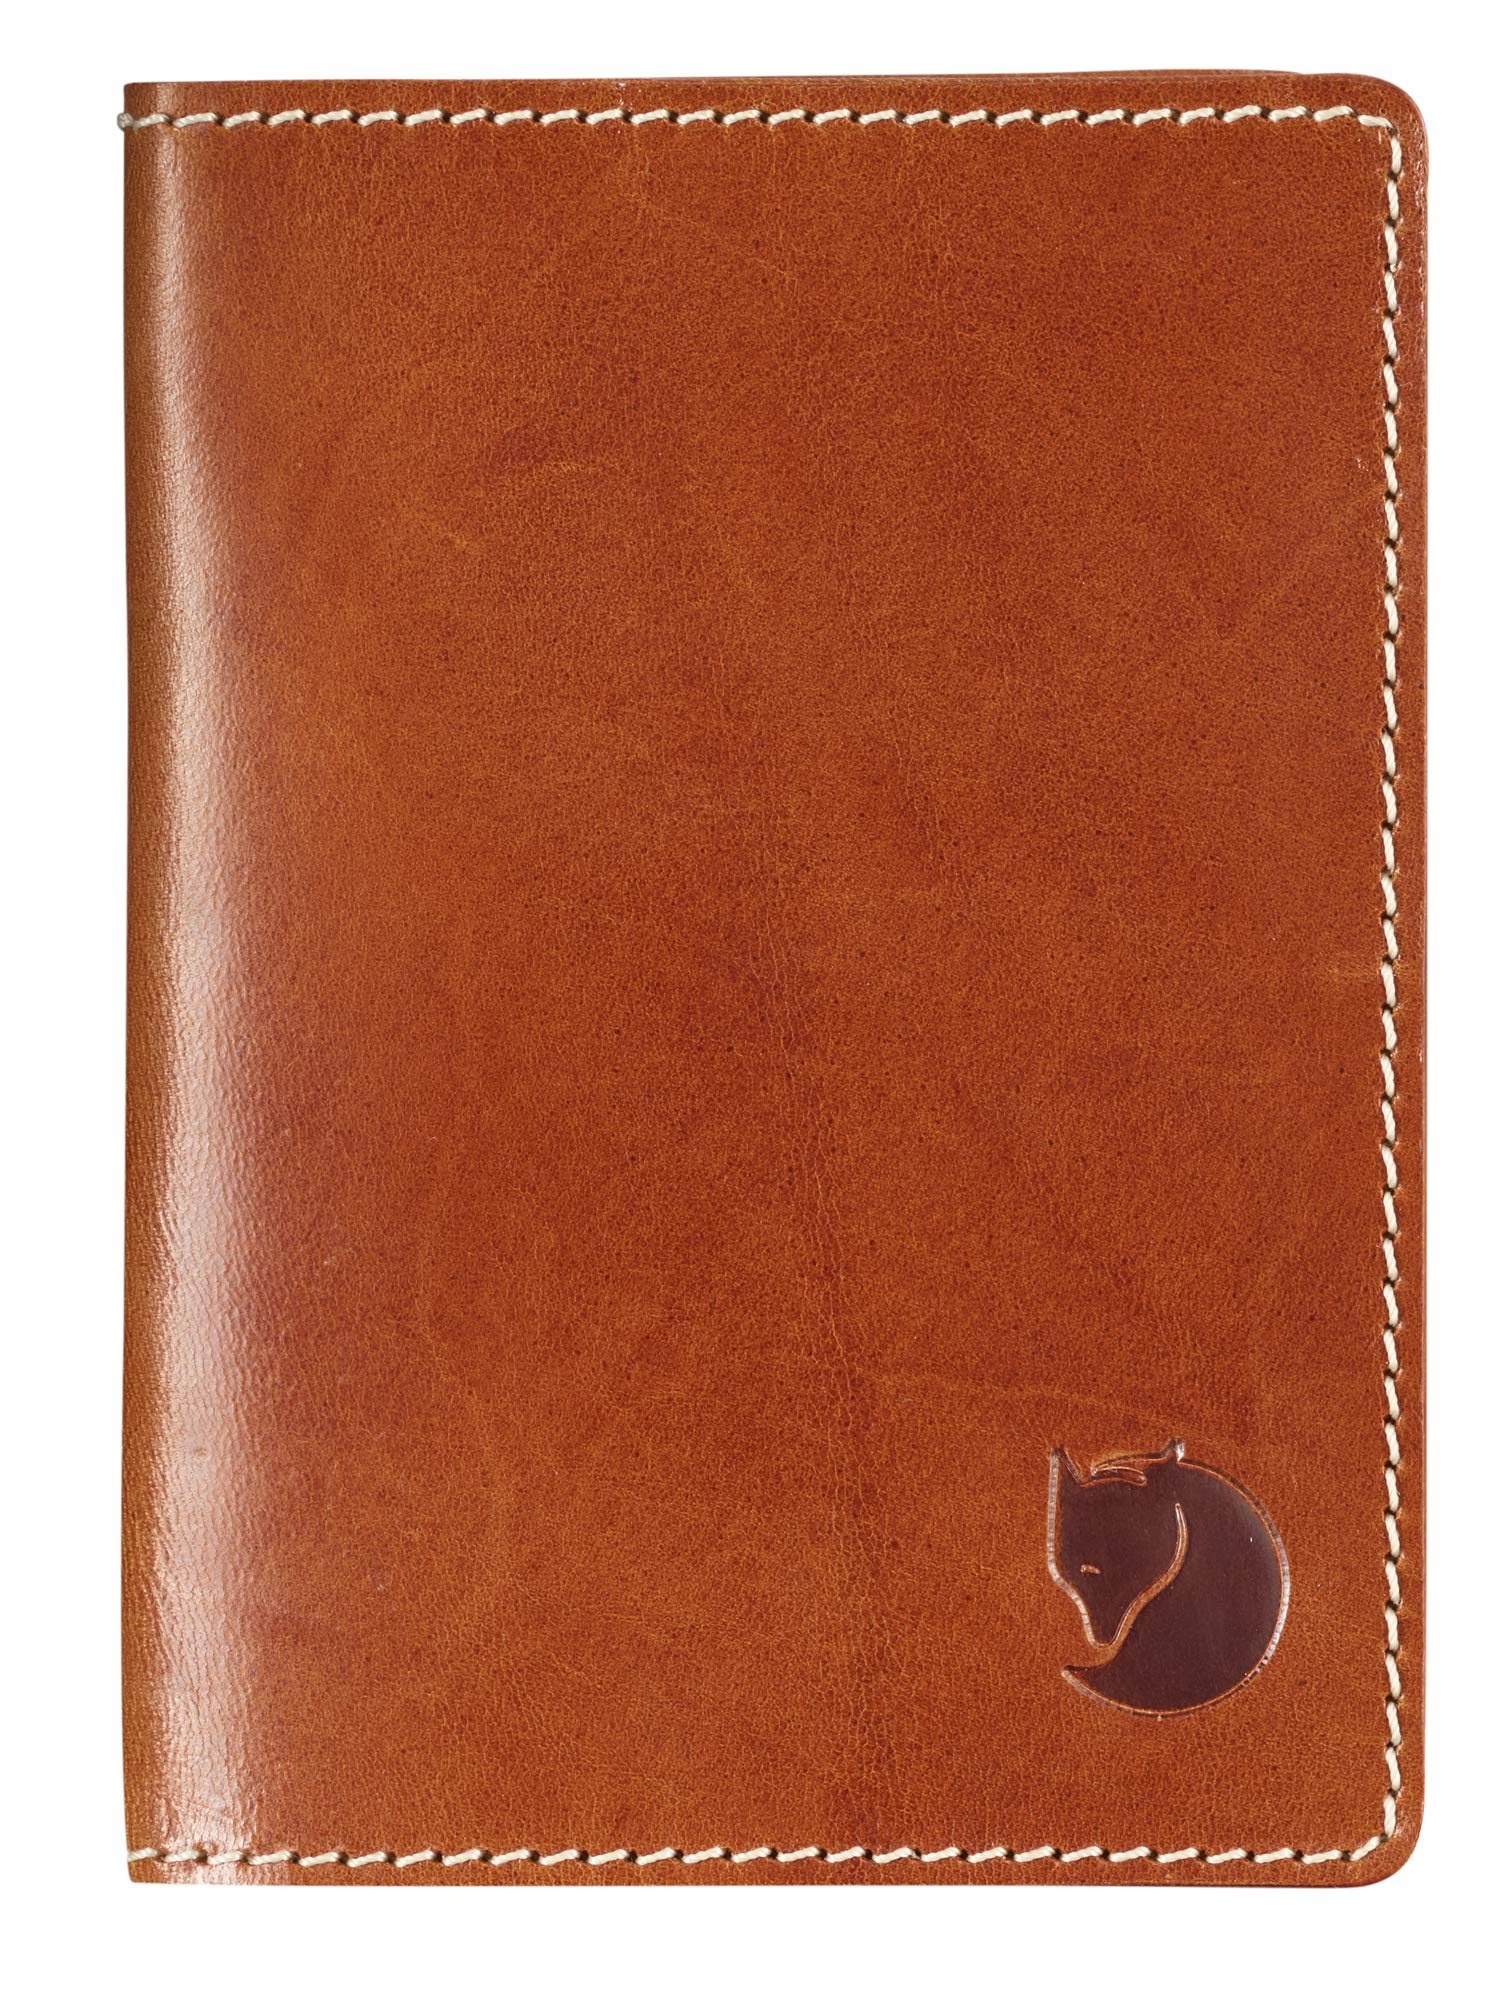 Fjallraven - Leather Passport Cover, Leather Cognac by Fjallraven